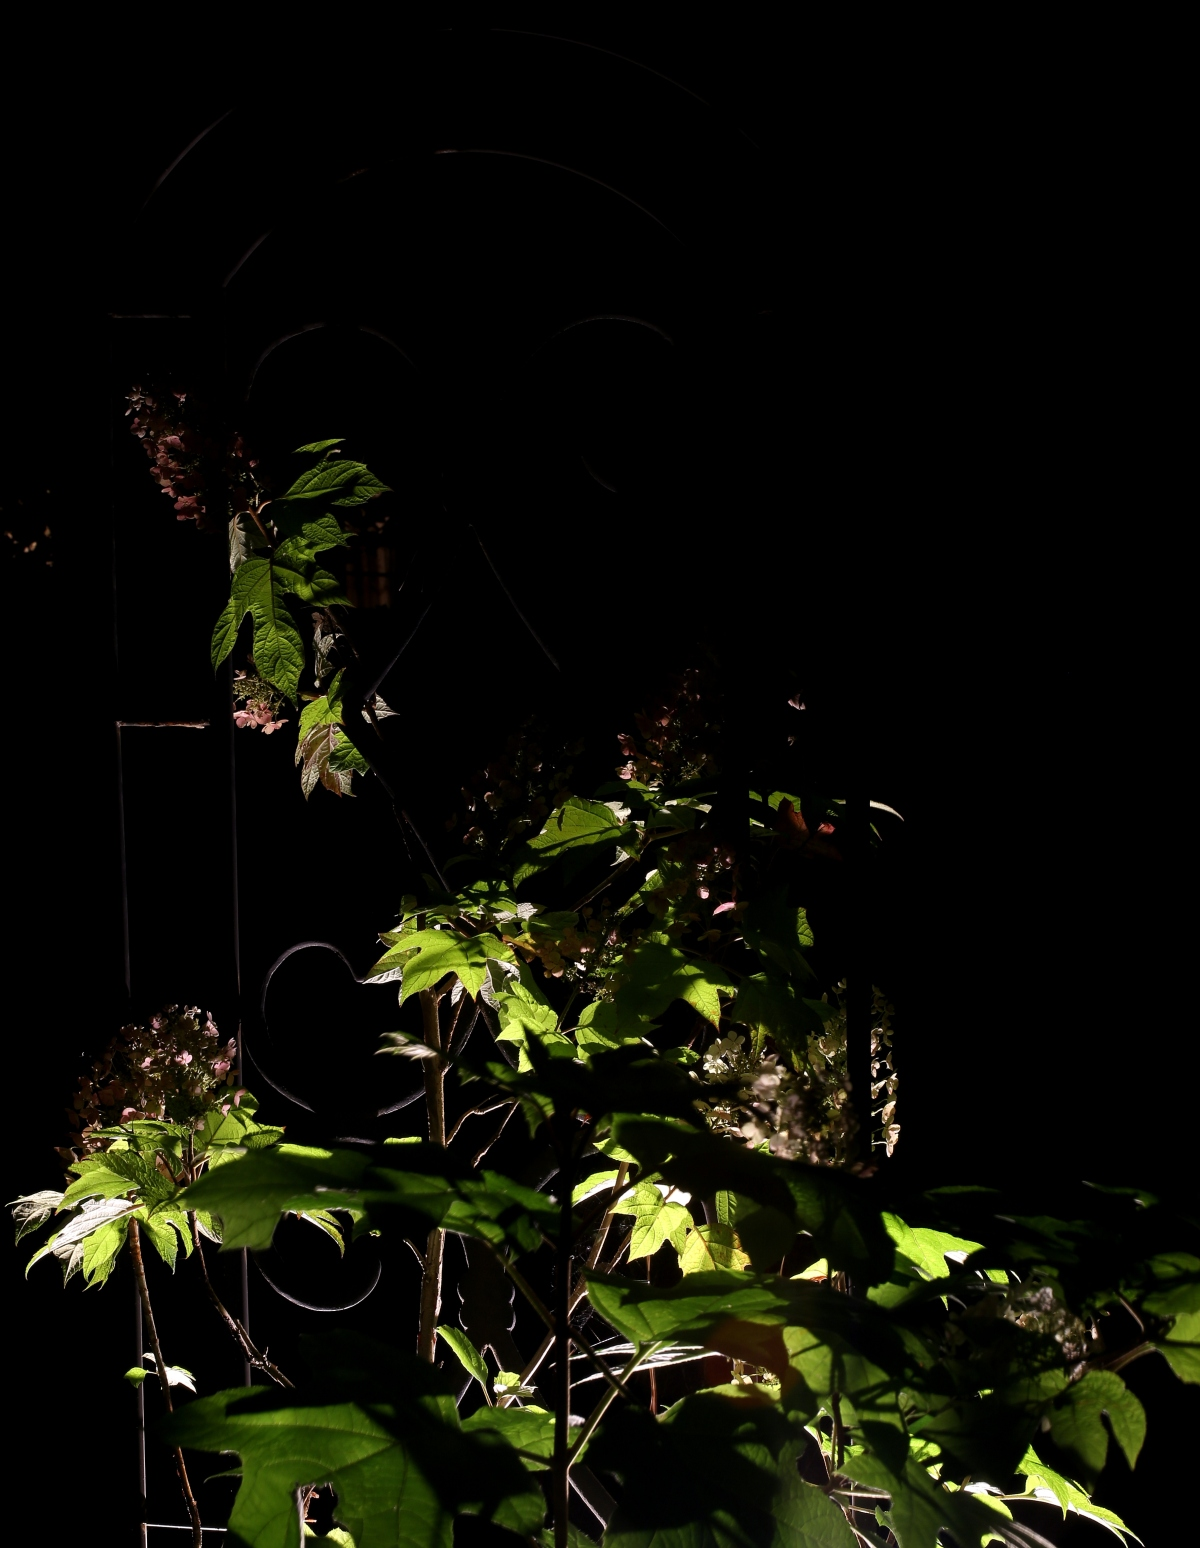 Photography ~ Backyard Landscaping–A Trellis & Oakleaf Hydrangea After Dark, 05/24 & 05/27